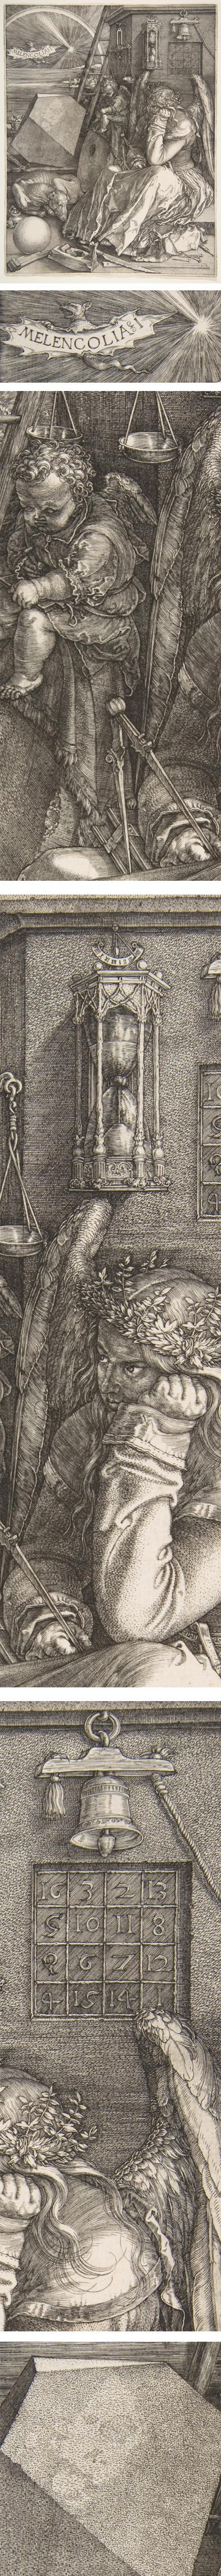 "One of the most iconic engravings by one of art's great printmakers, Melelcolia (an archaic spelling of melancholia) is filled with symbols of alchemy and carpentry (architecture), along with various measuring tools, an hourglass, a polyhedron and a ""magic square"" — the rows of which add up to 34 in all directions."